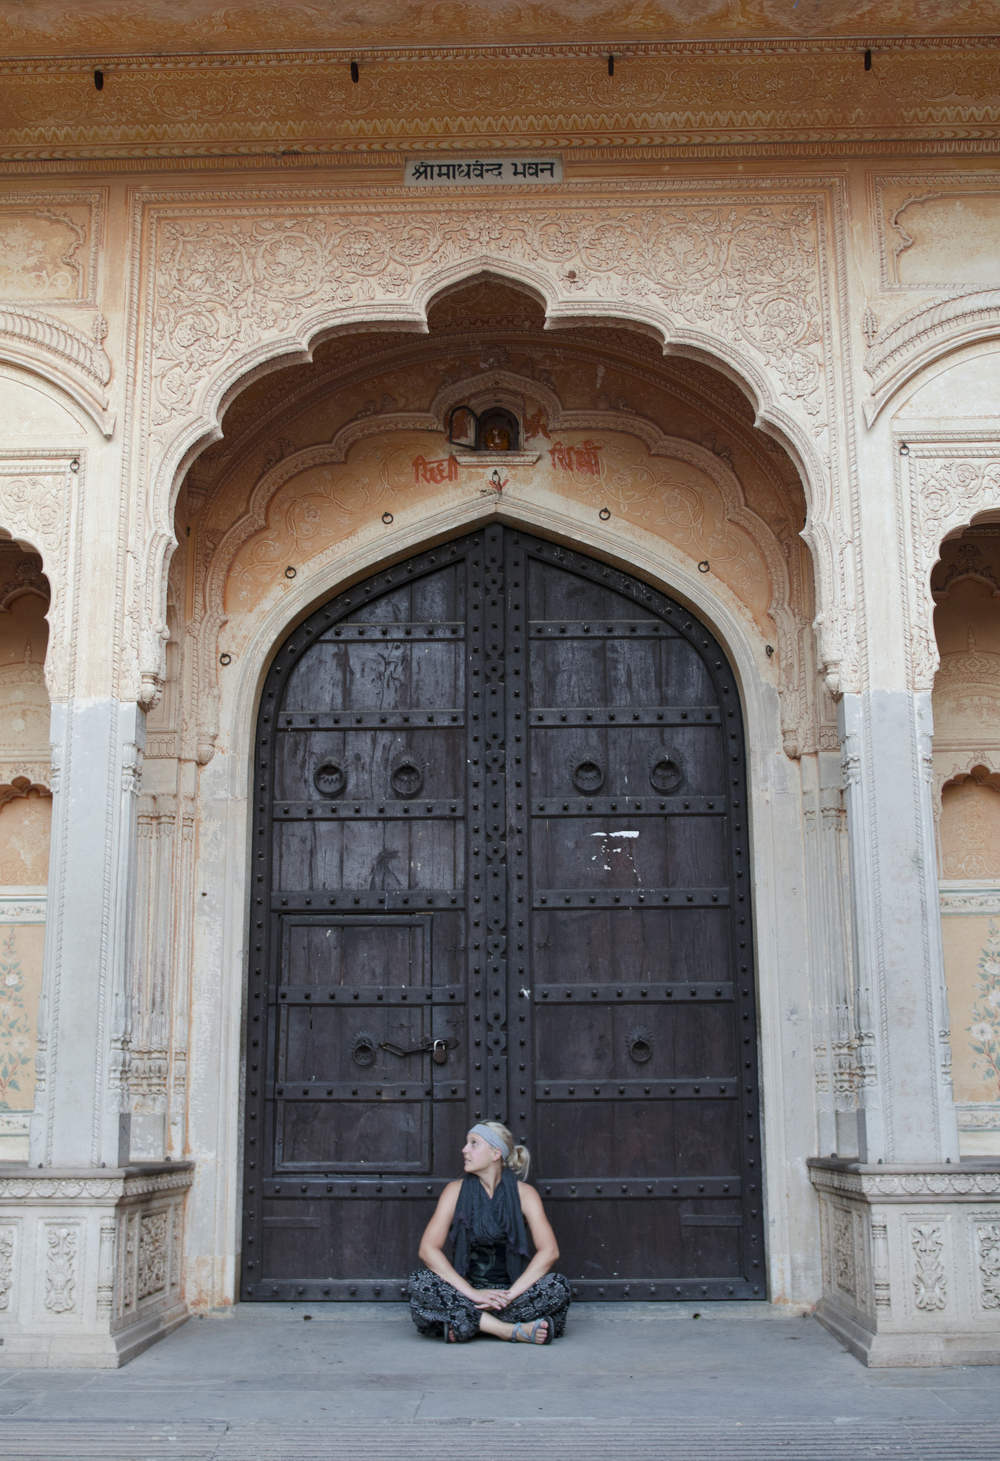 Our friend Sarah at Jaighur Fort. Twas sad to see graphiti on such a beautiful building.